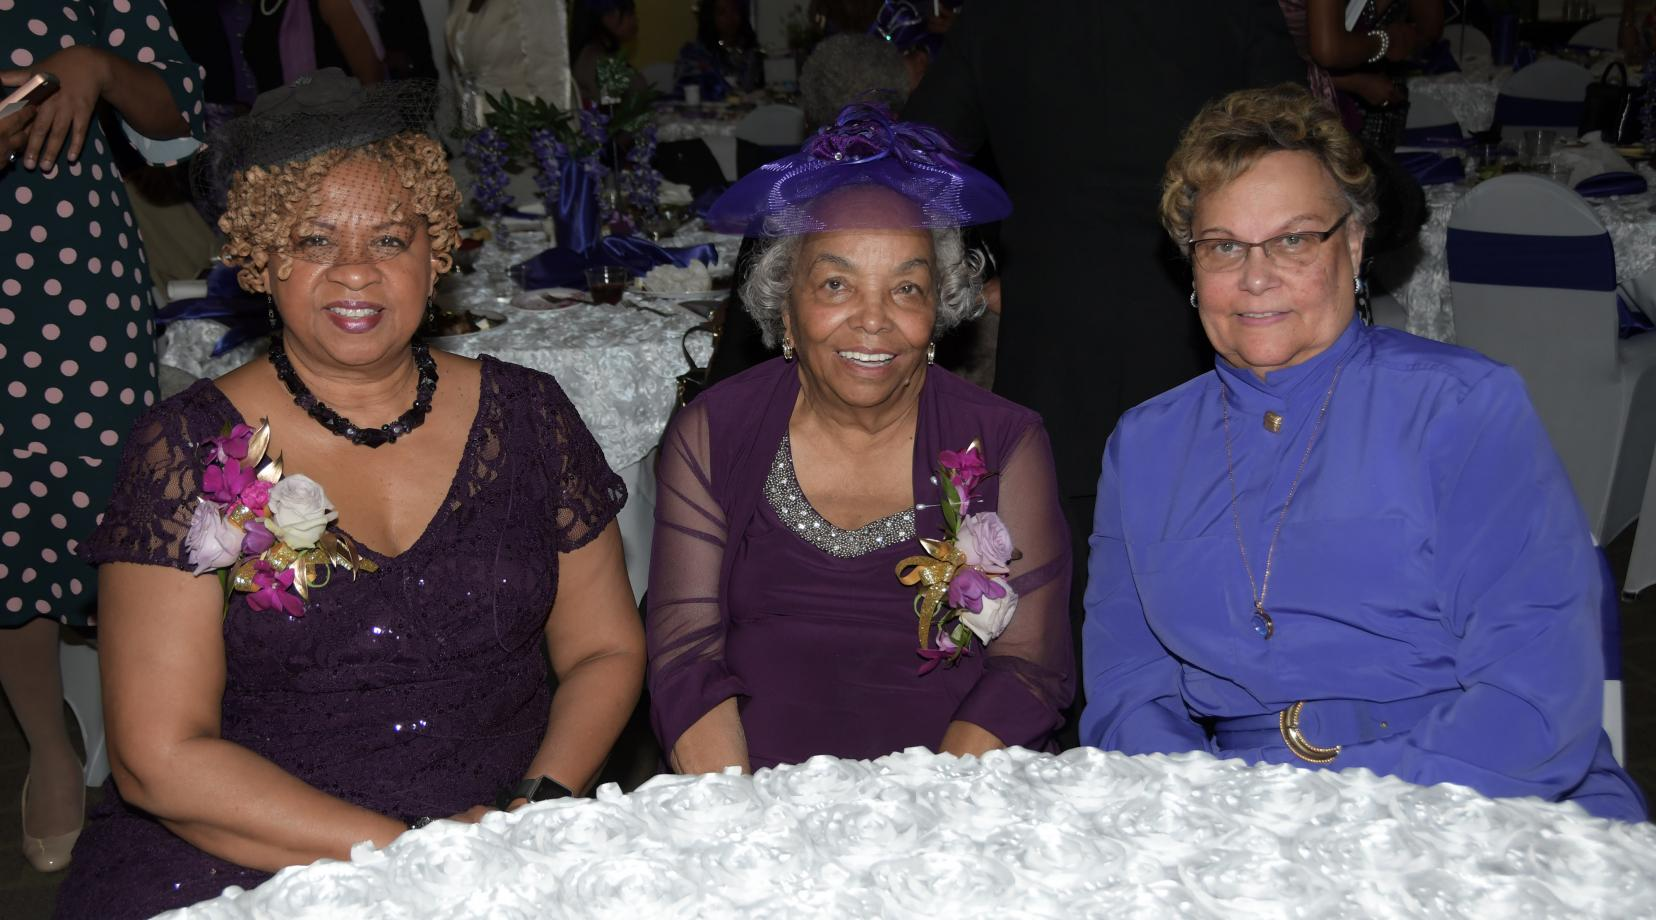 The 2019 Hats & Gloves Tea honorees: (l-r) Dr. Hanifa Shabazz, Peggy Swygert and Rev. Jean Wylie.